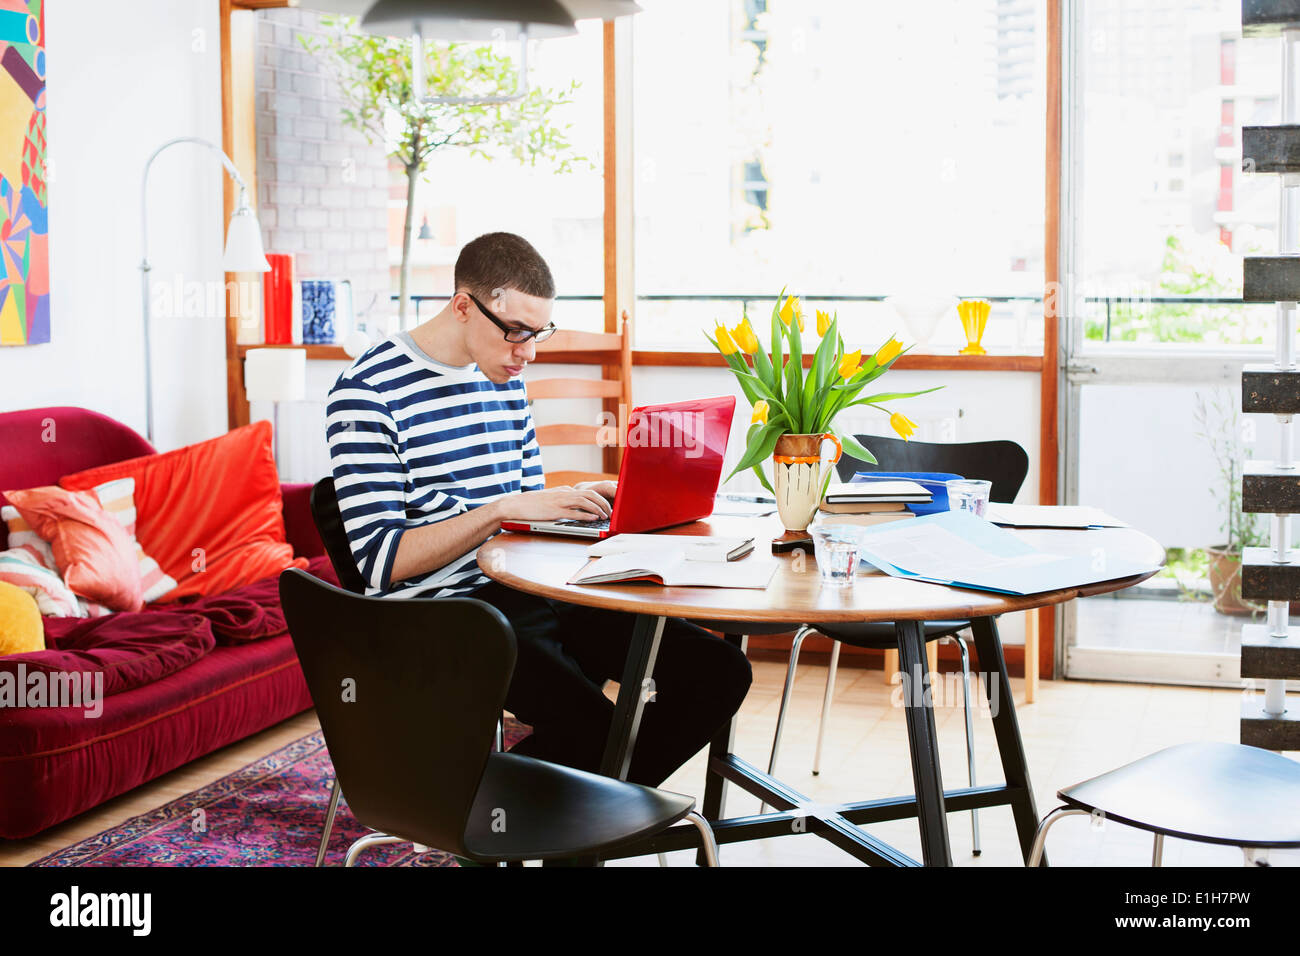 Young man sitting at table using laptop - Stock Image